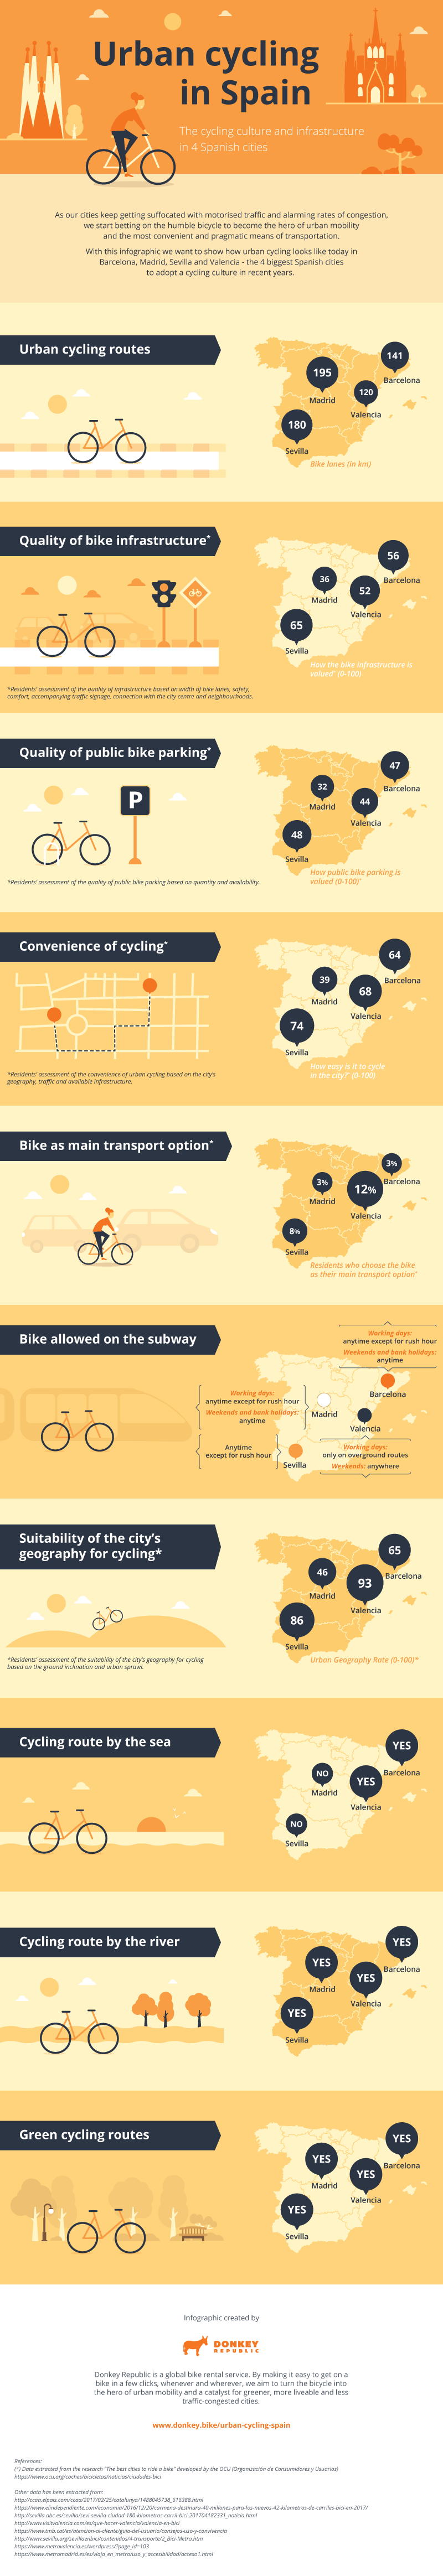 Infographic about cycling culture and infrastructure in Spain